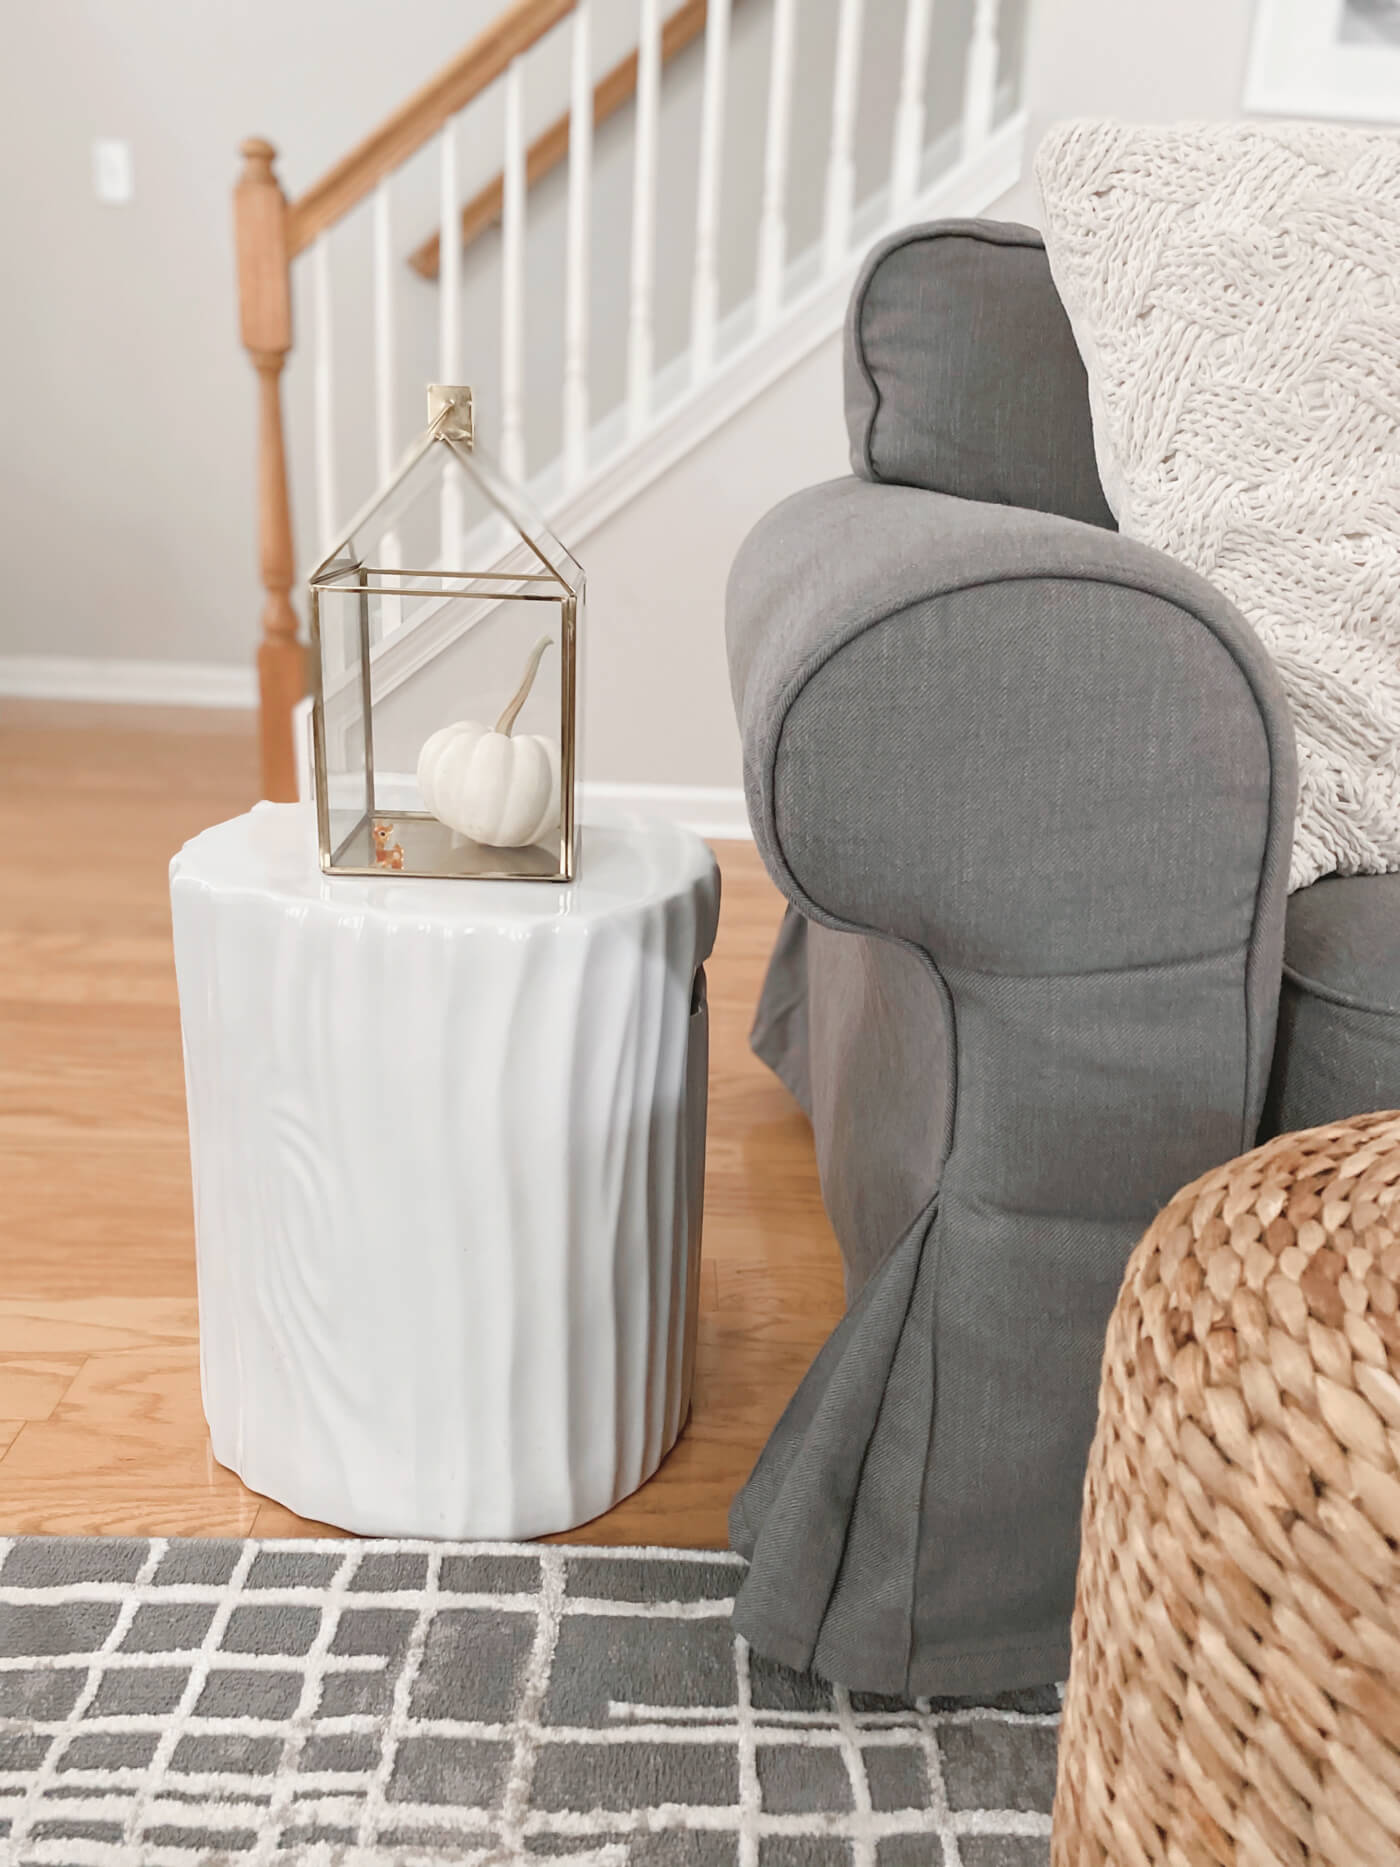 White Modern Garden Stool - When your decorating style changes